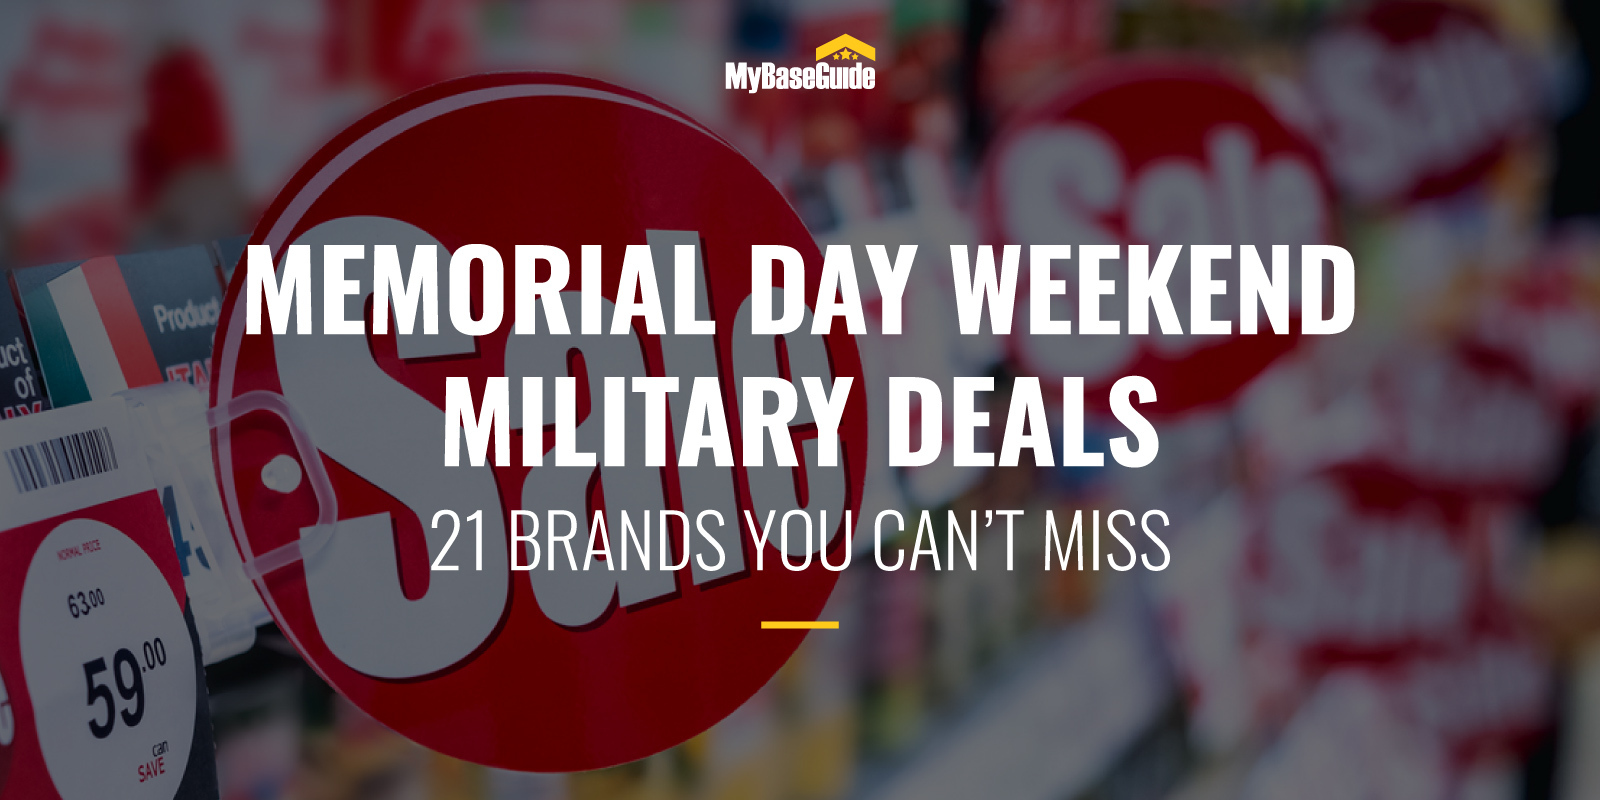 Memorial Day Weekend Military Deals: 21 Brands You Can't Miss